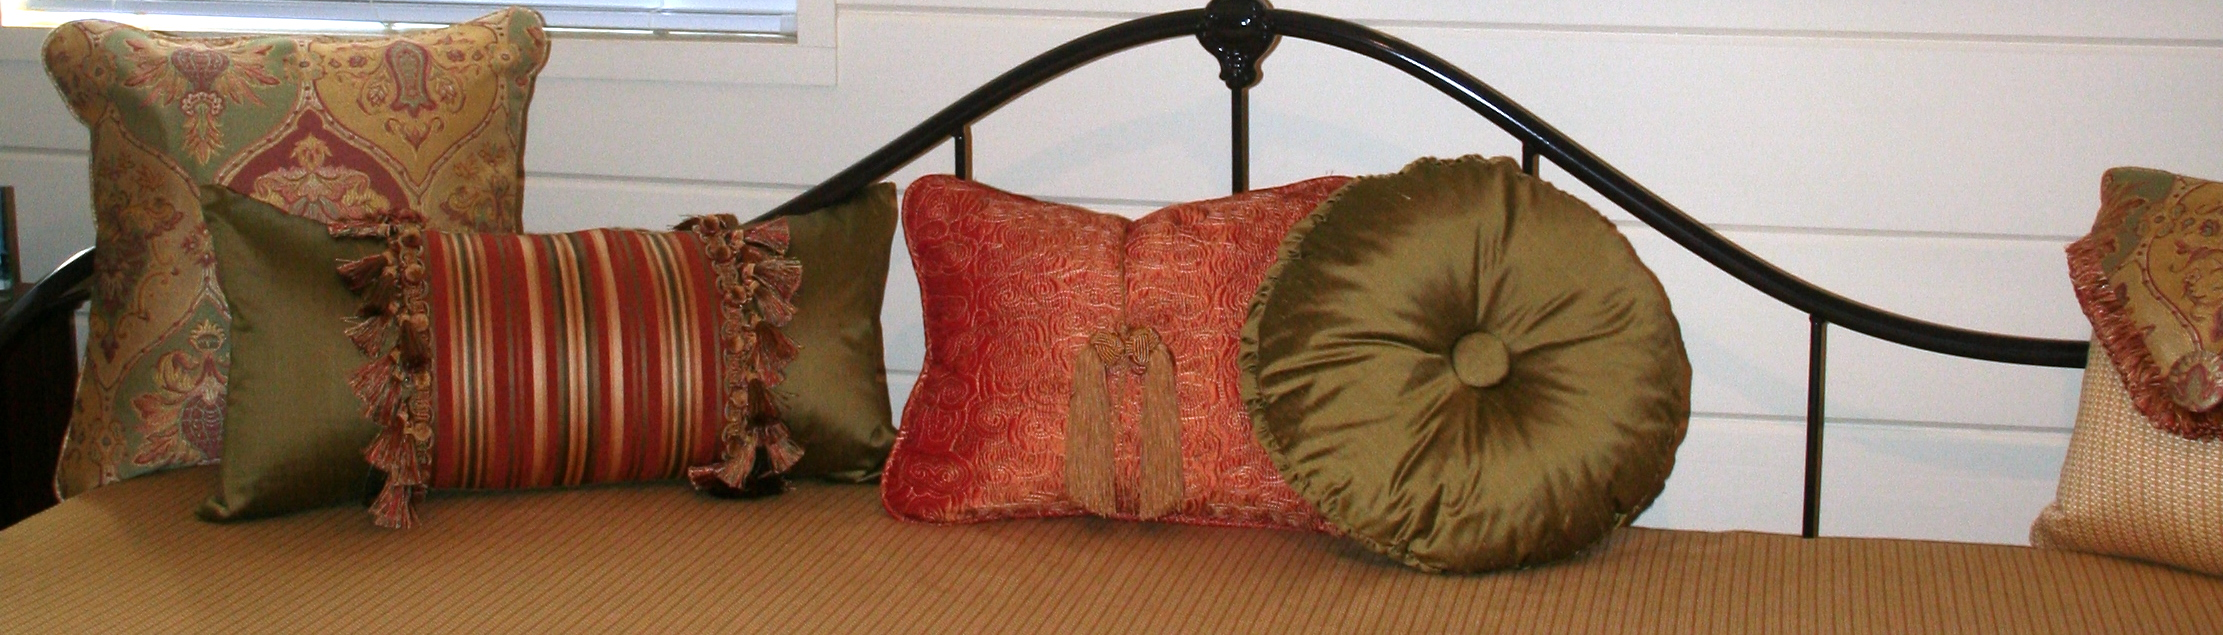 Daybed Makeover Completed with pillows, shutters, valance